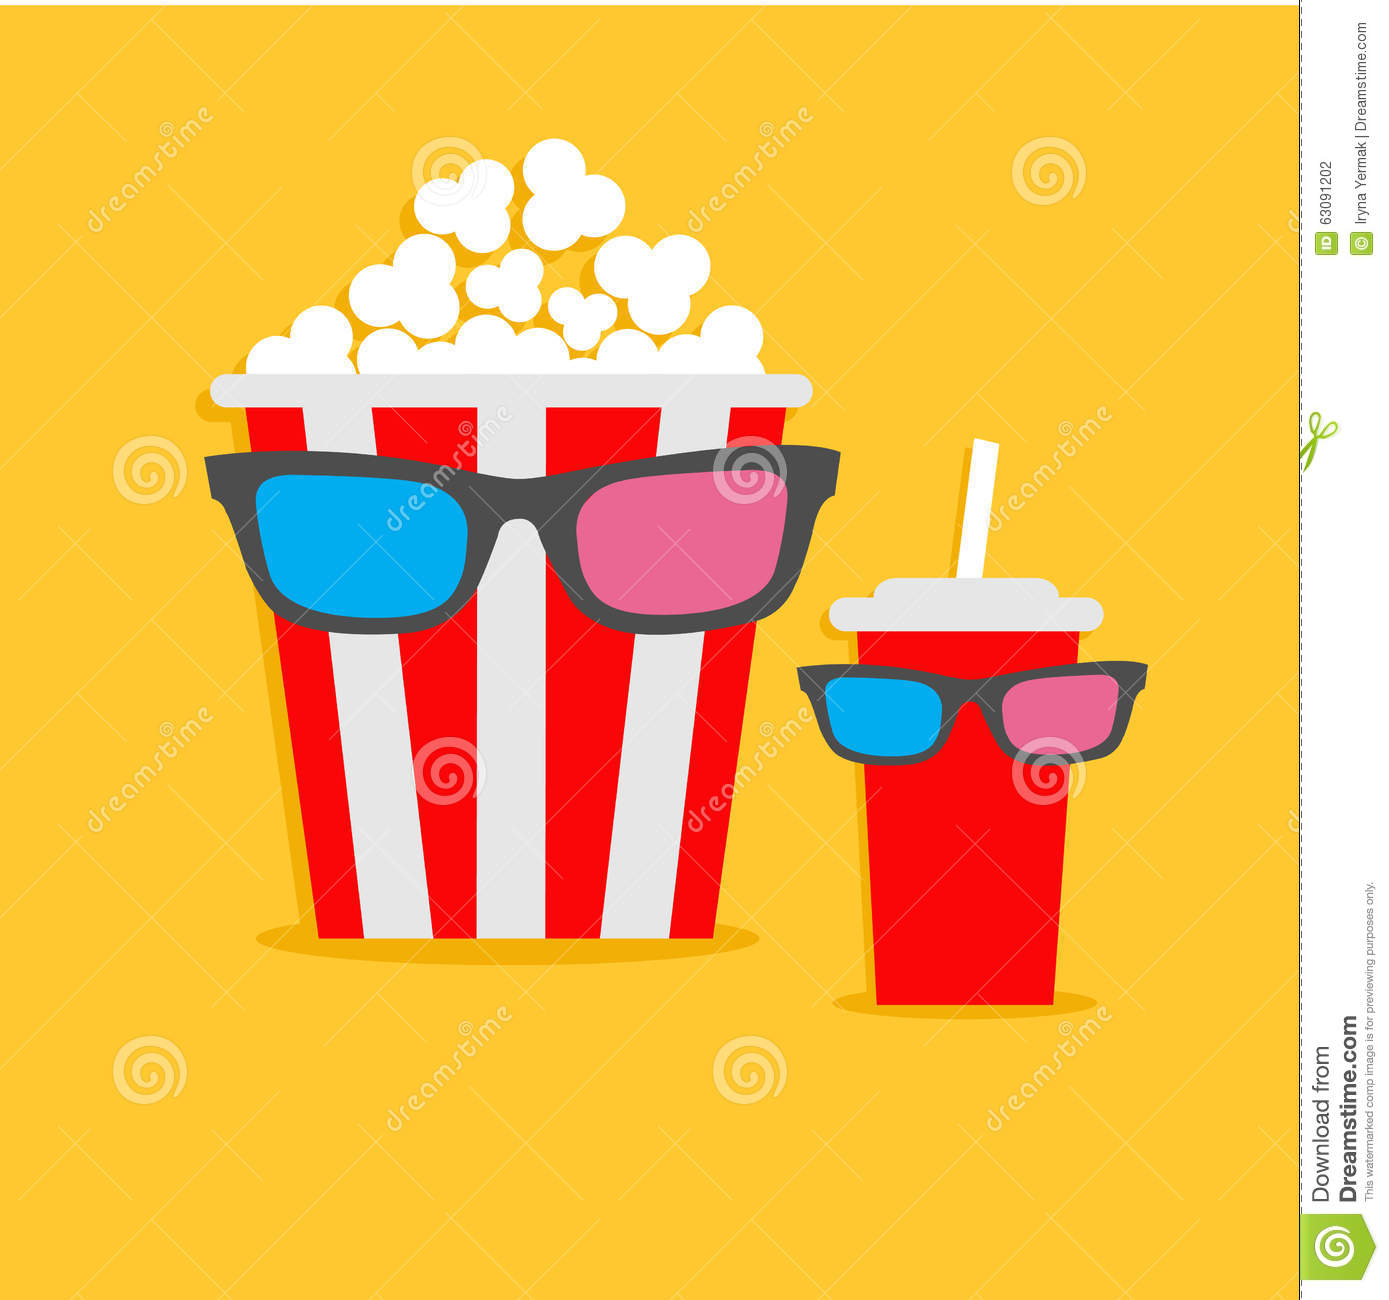 Popcorn box and soda glass characters in 3d glasses for 3d flat design online